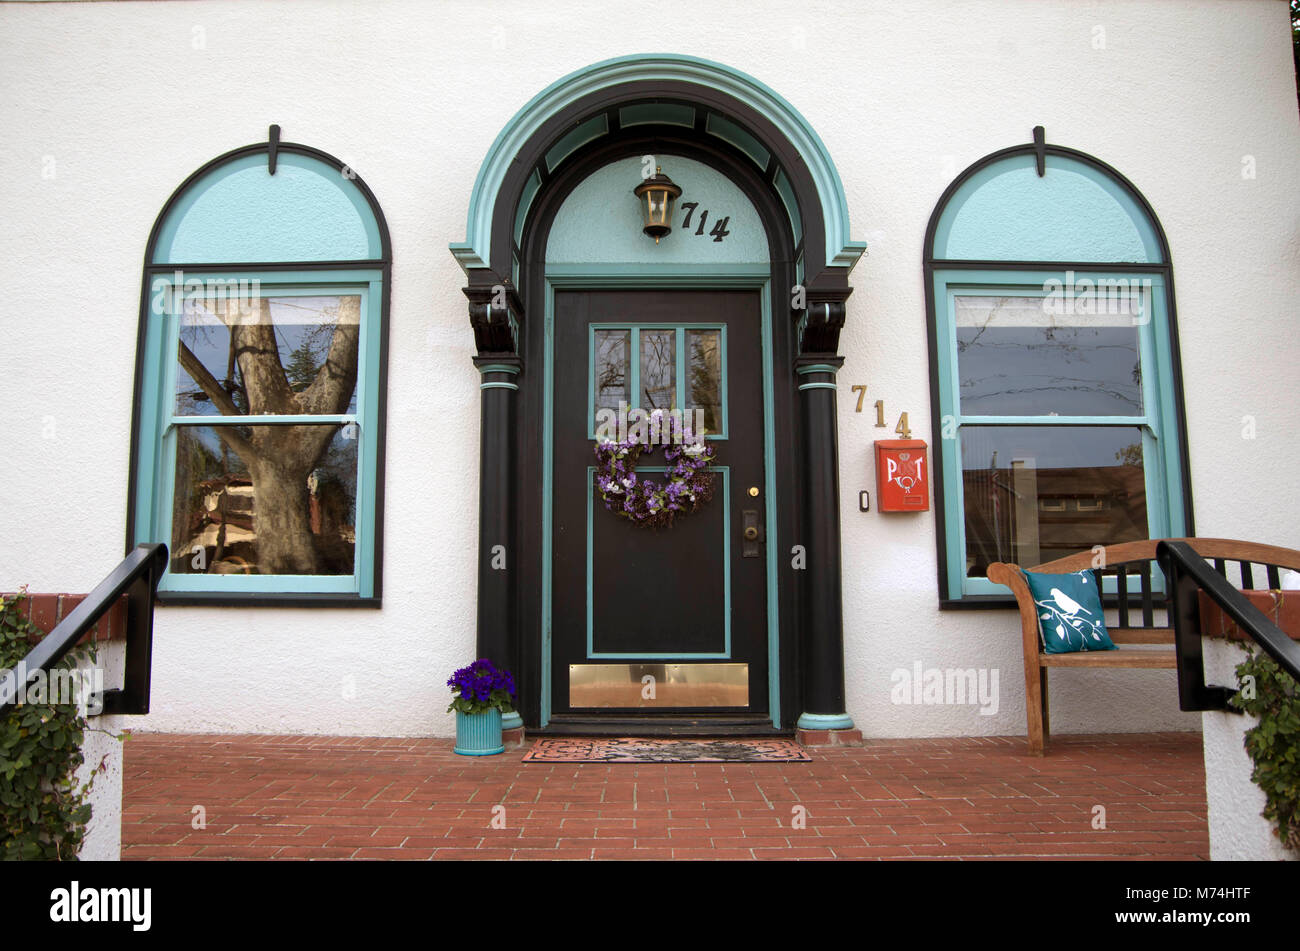 This doorway features several good ideas for decoration. - Stock Image